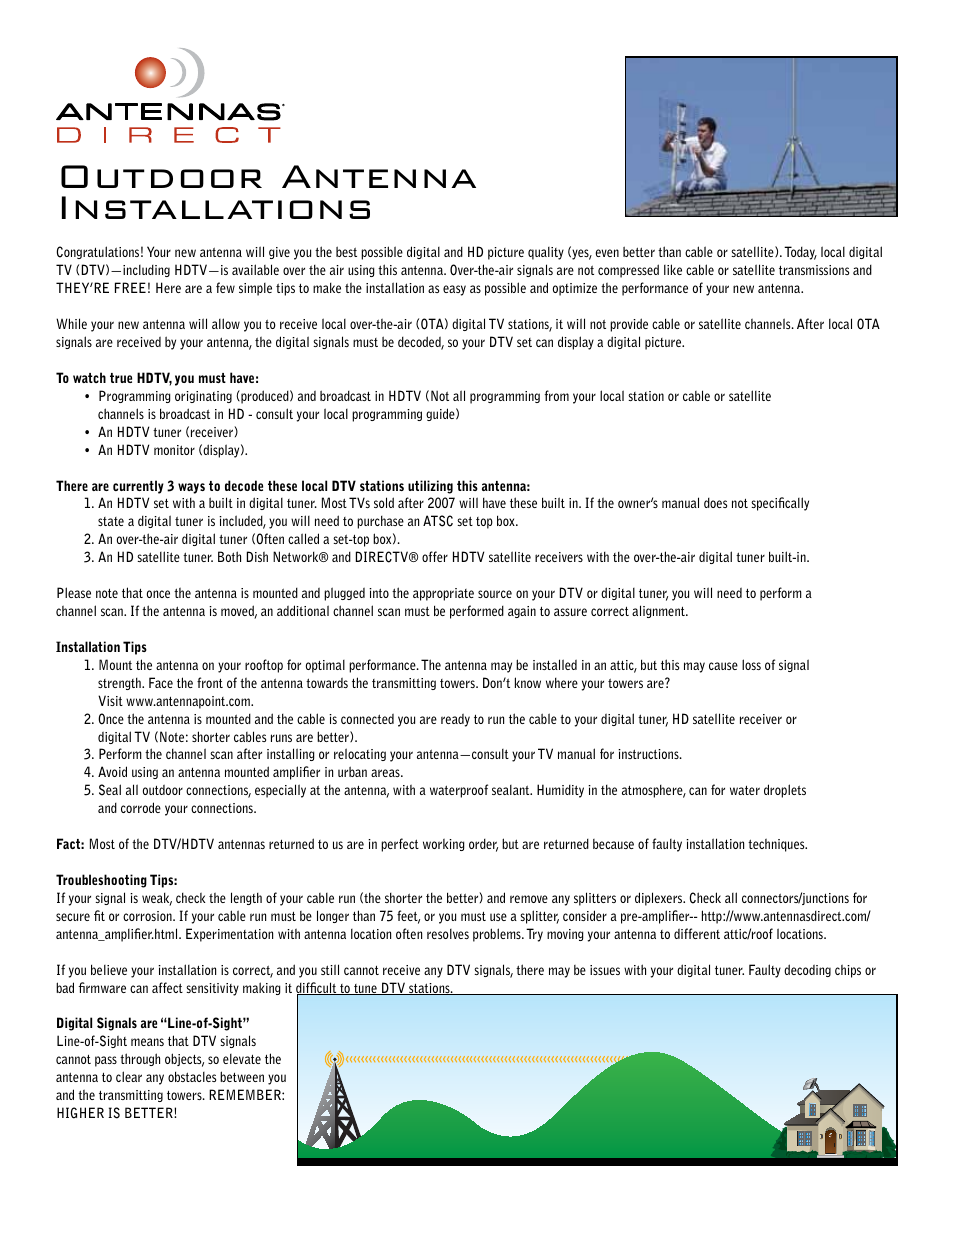 Antennas Direct ClearStream 2 Indoor/Outdoor DTV Installation Instructions  User Manual | 2 pages